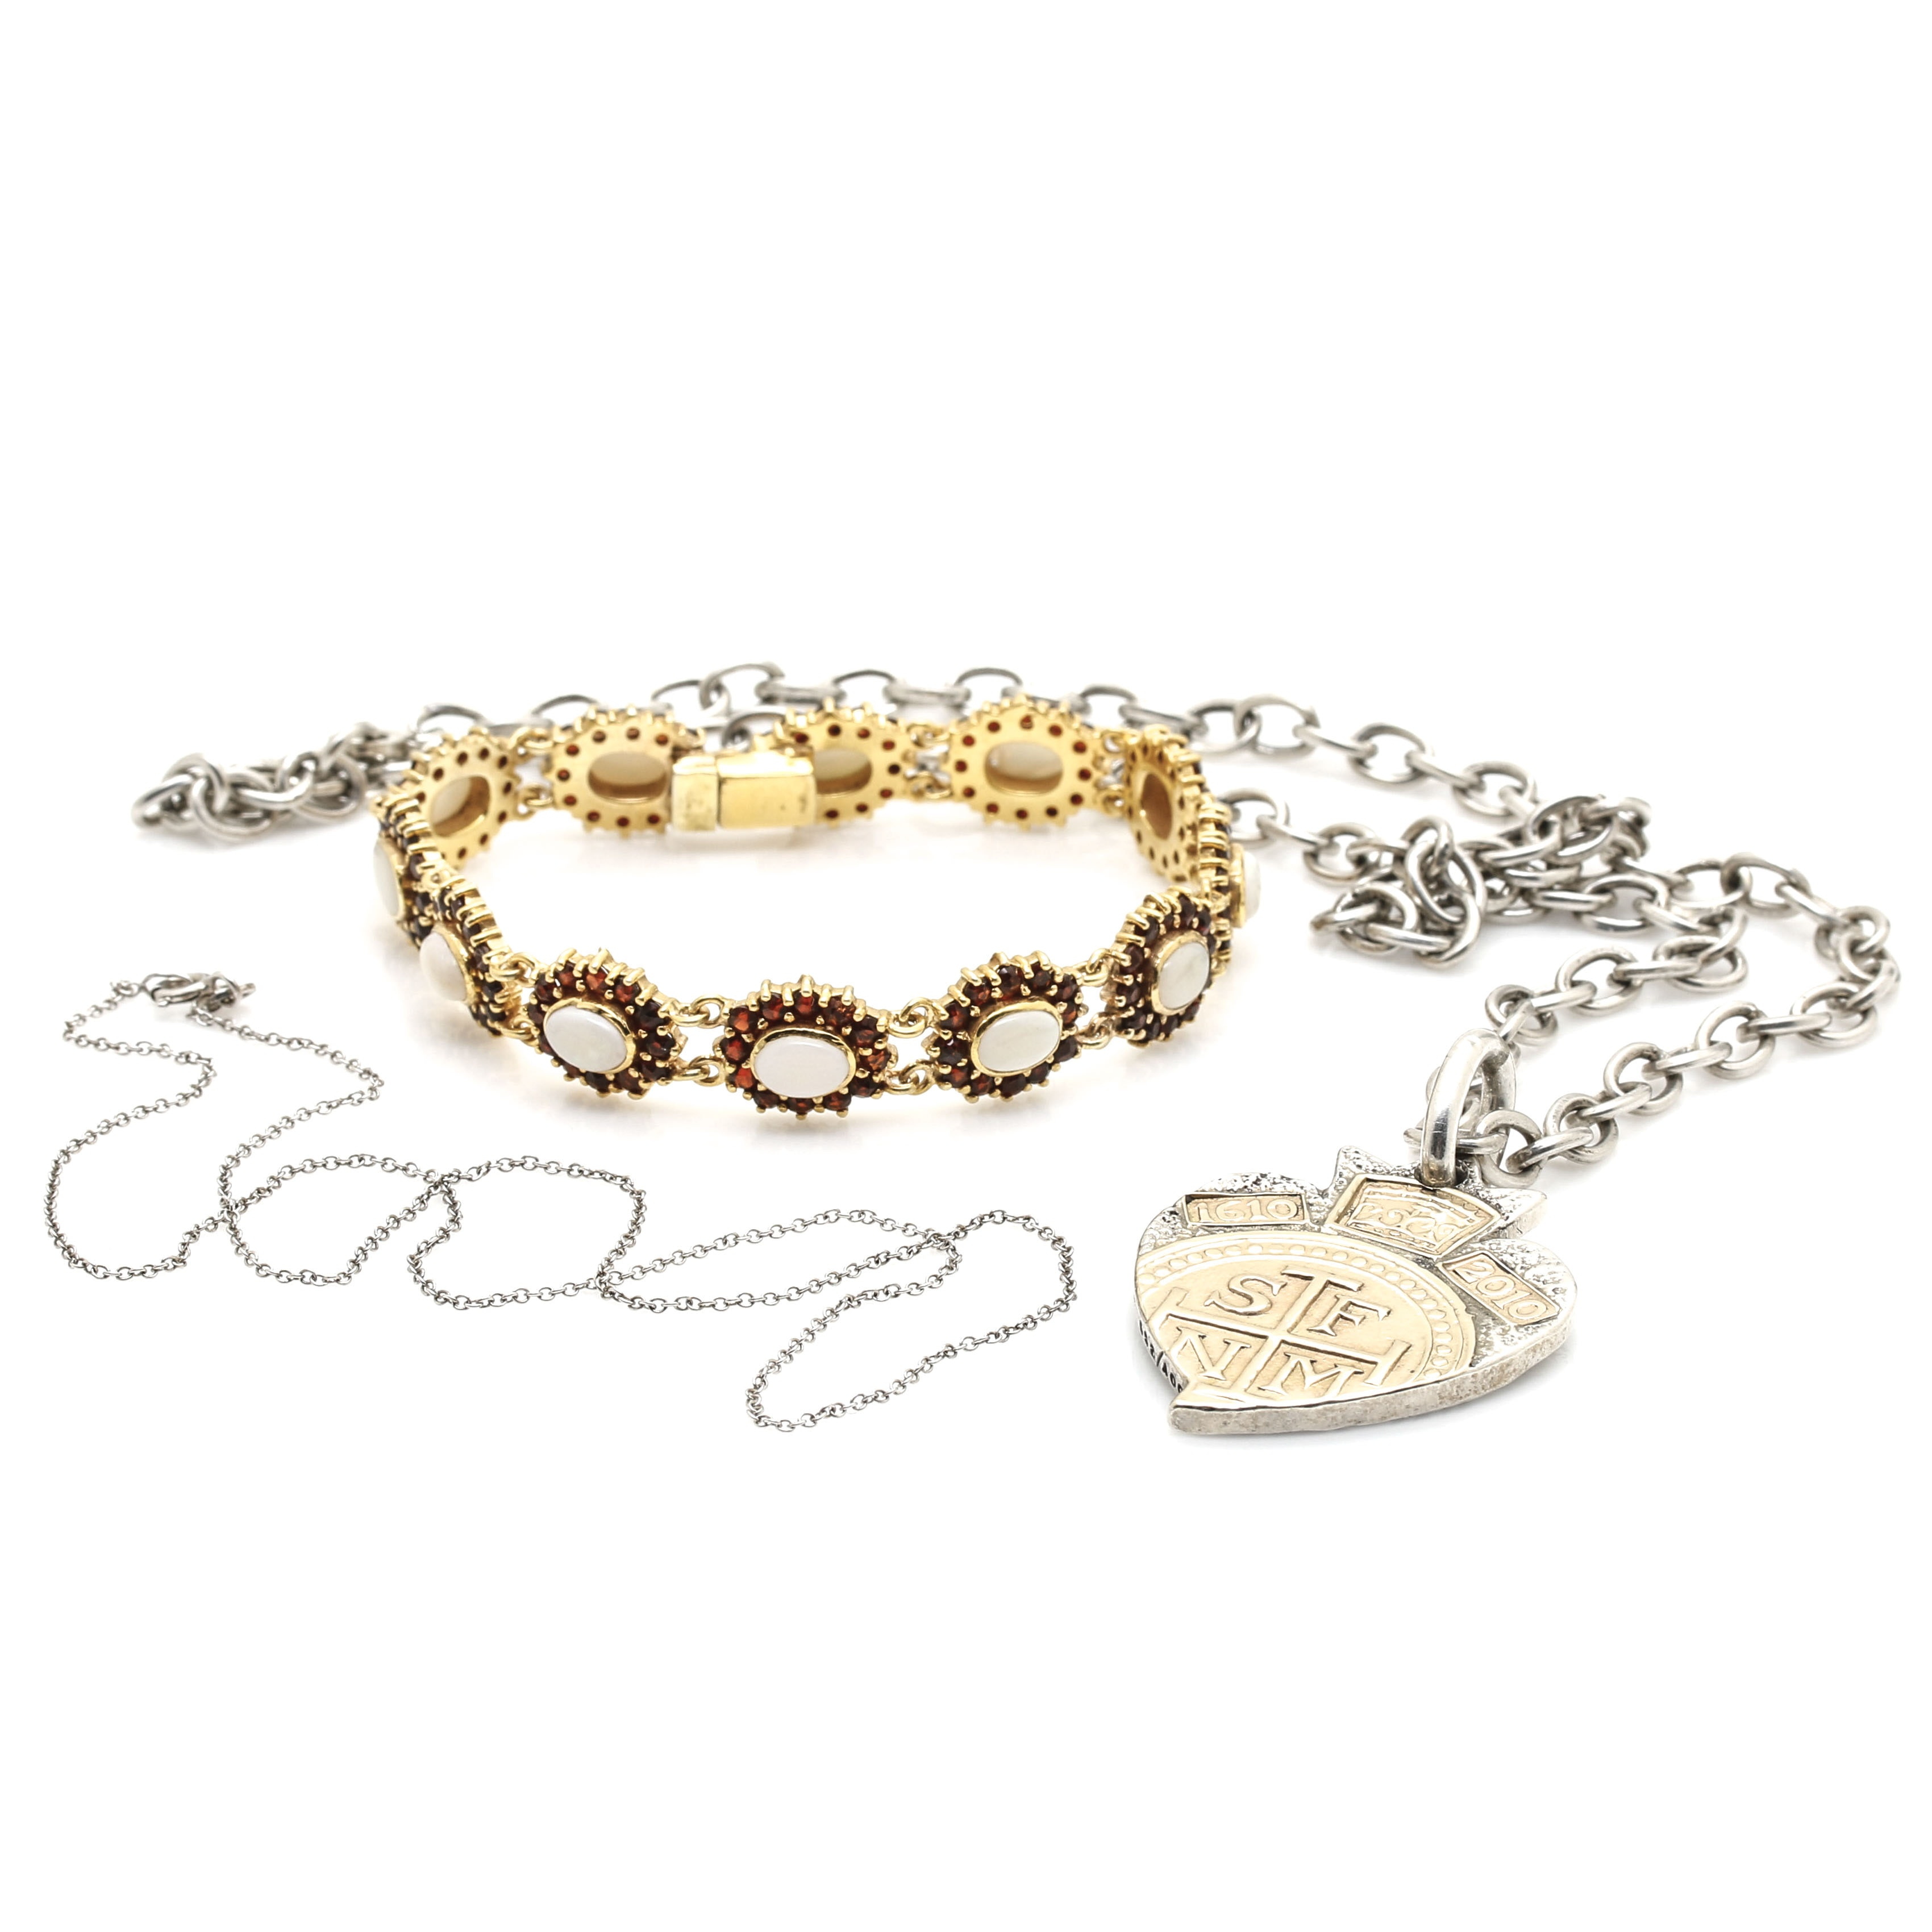 Sterling Silver Necklaces and Bracelet Featuring Douglas Magnus